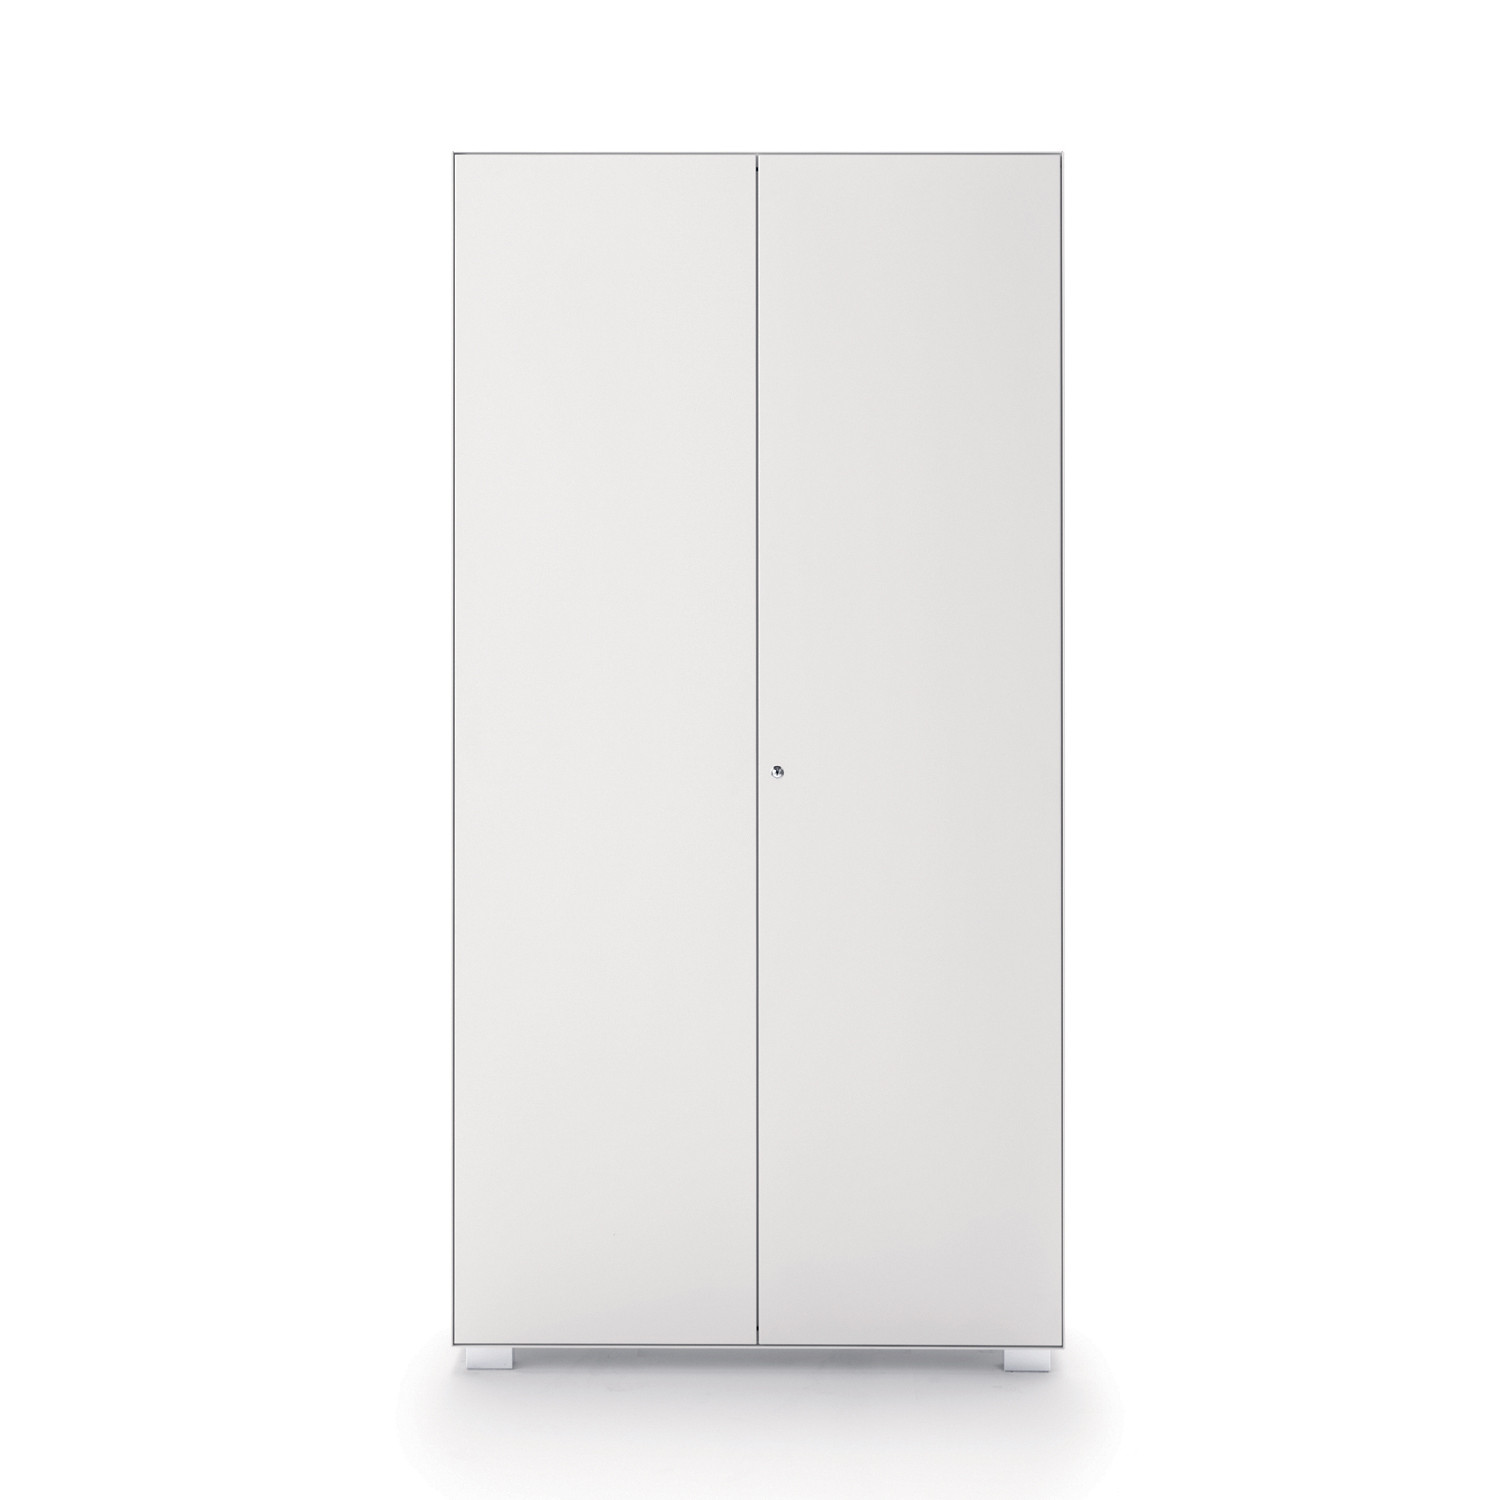 Primo 1000 Door Cabinets are available in 5 different heights